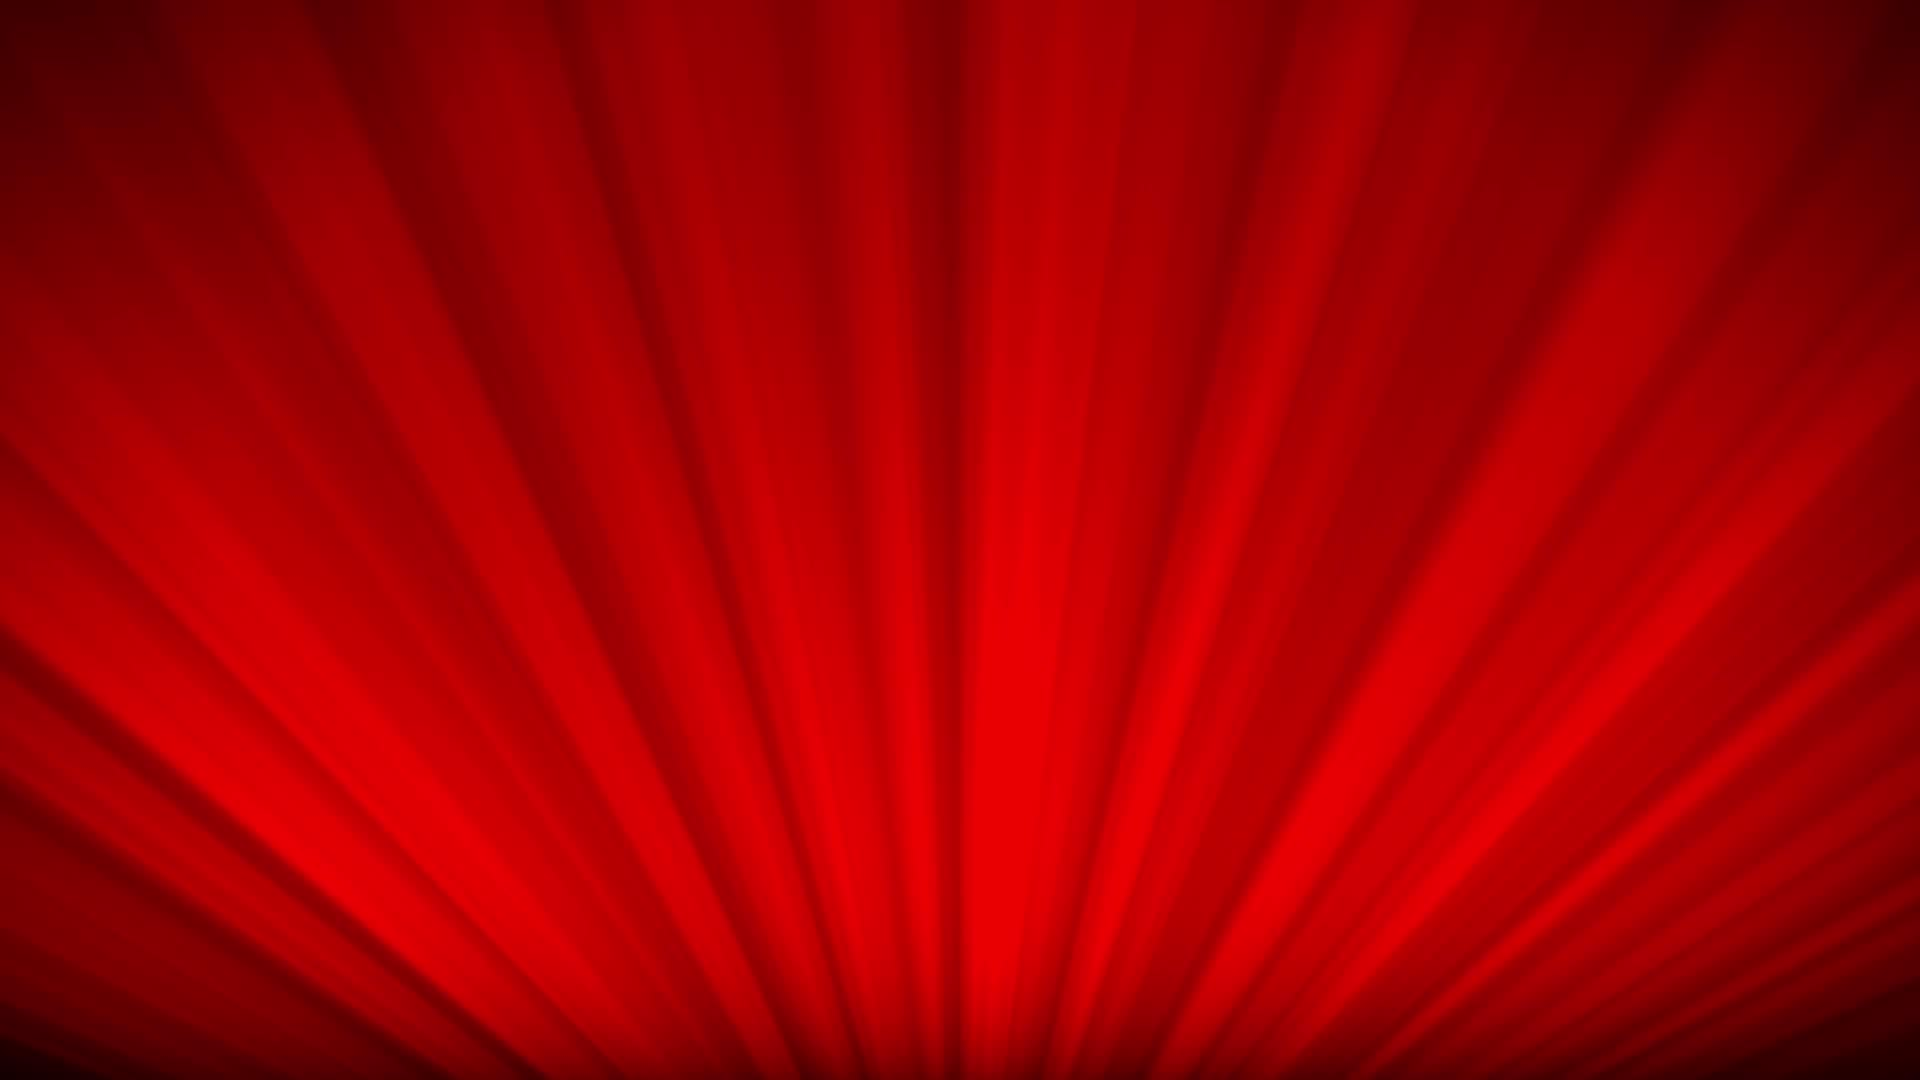 Red Abstract Background wallpaper 1920x1080 10915 1920x1080